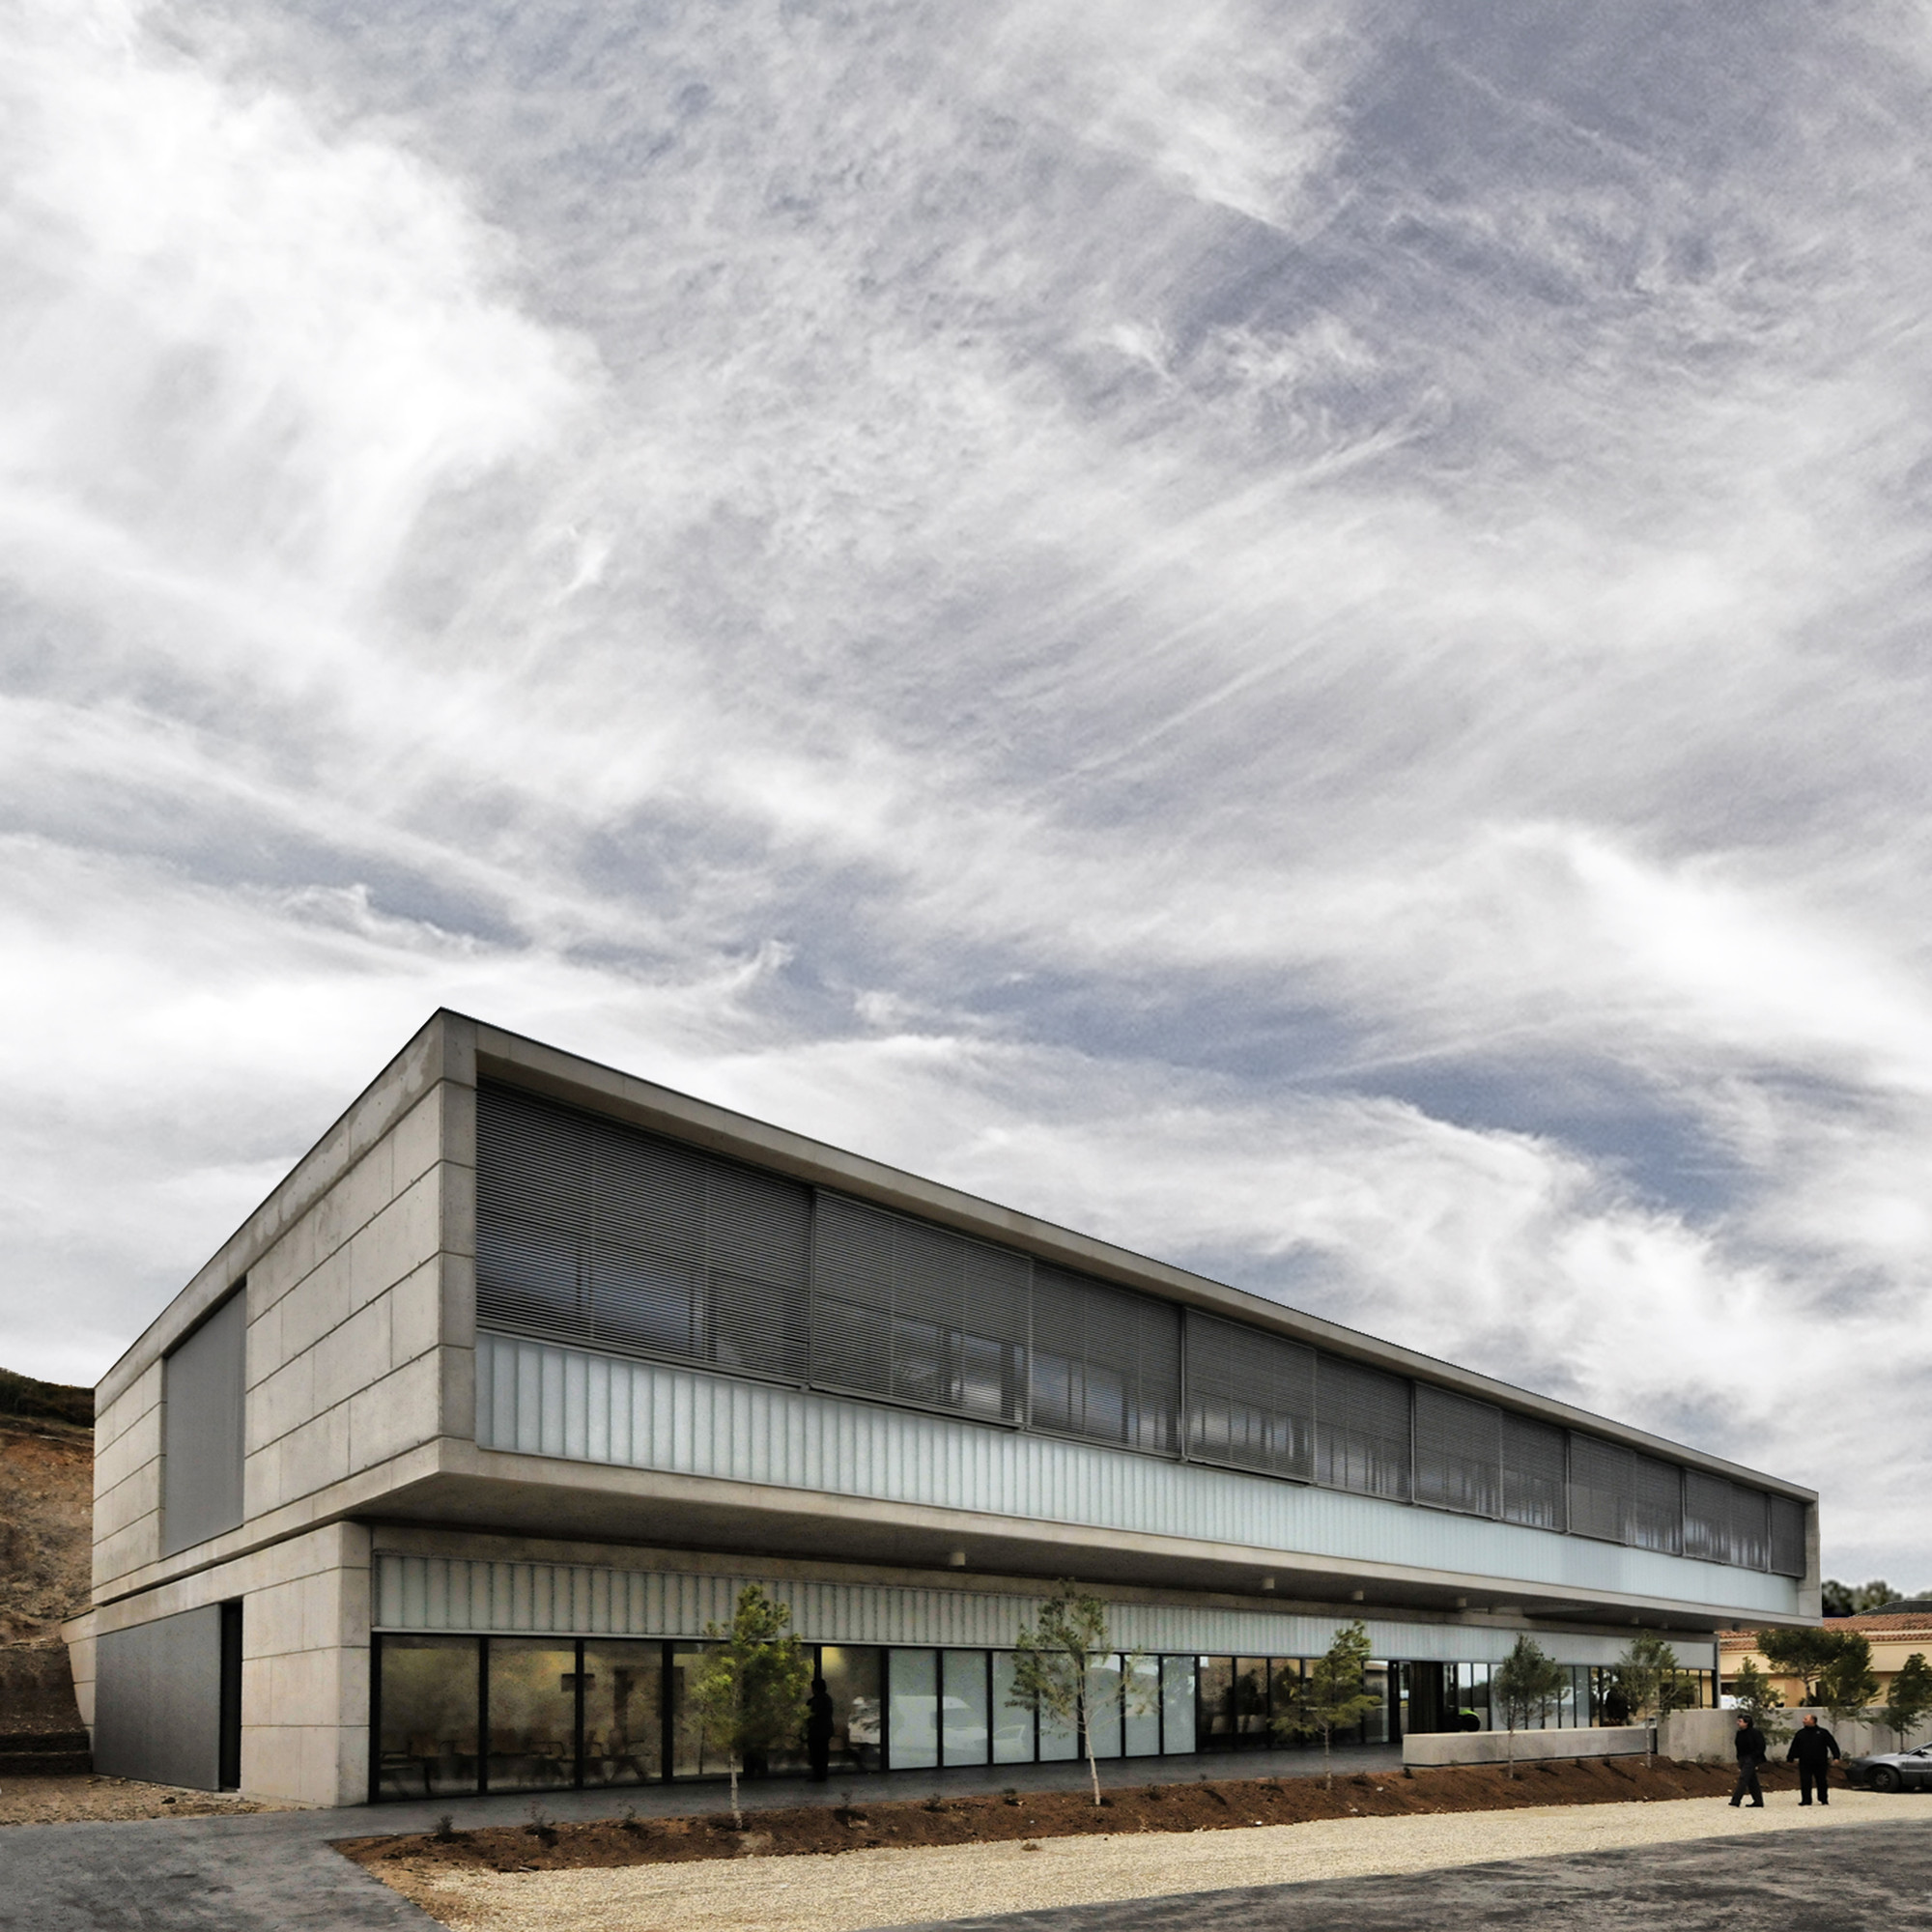 Healthcare Centre in Son Servera / Pm, Mt, Courtesy of PmMt arquitectura